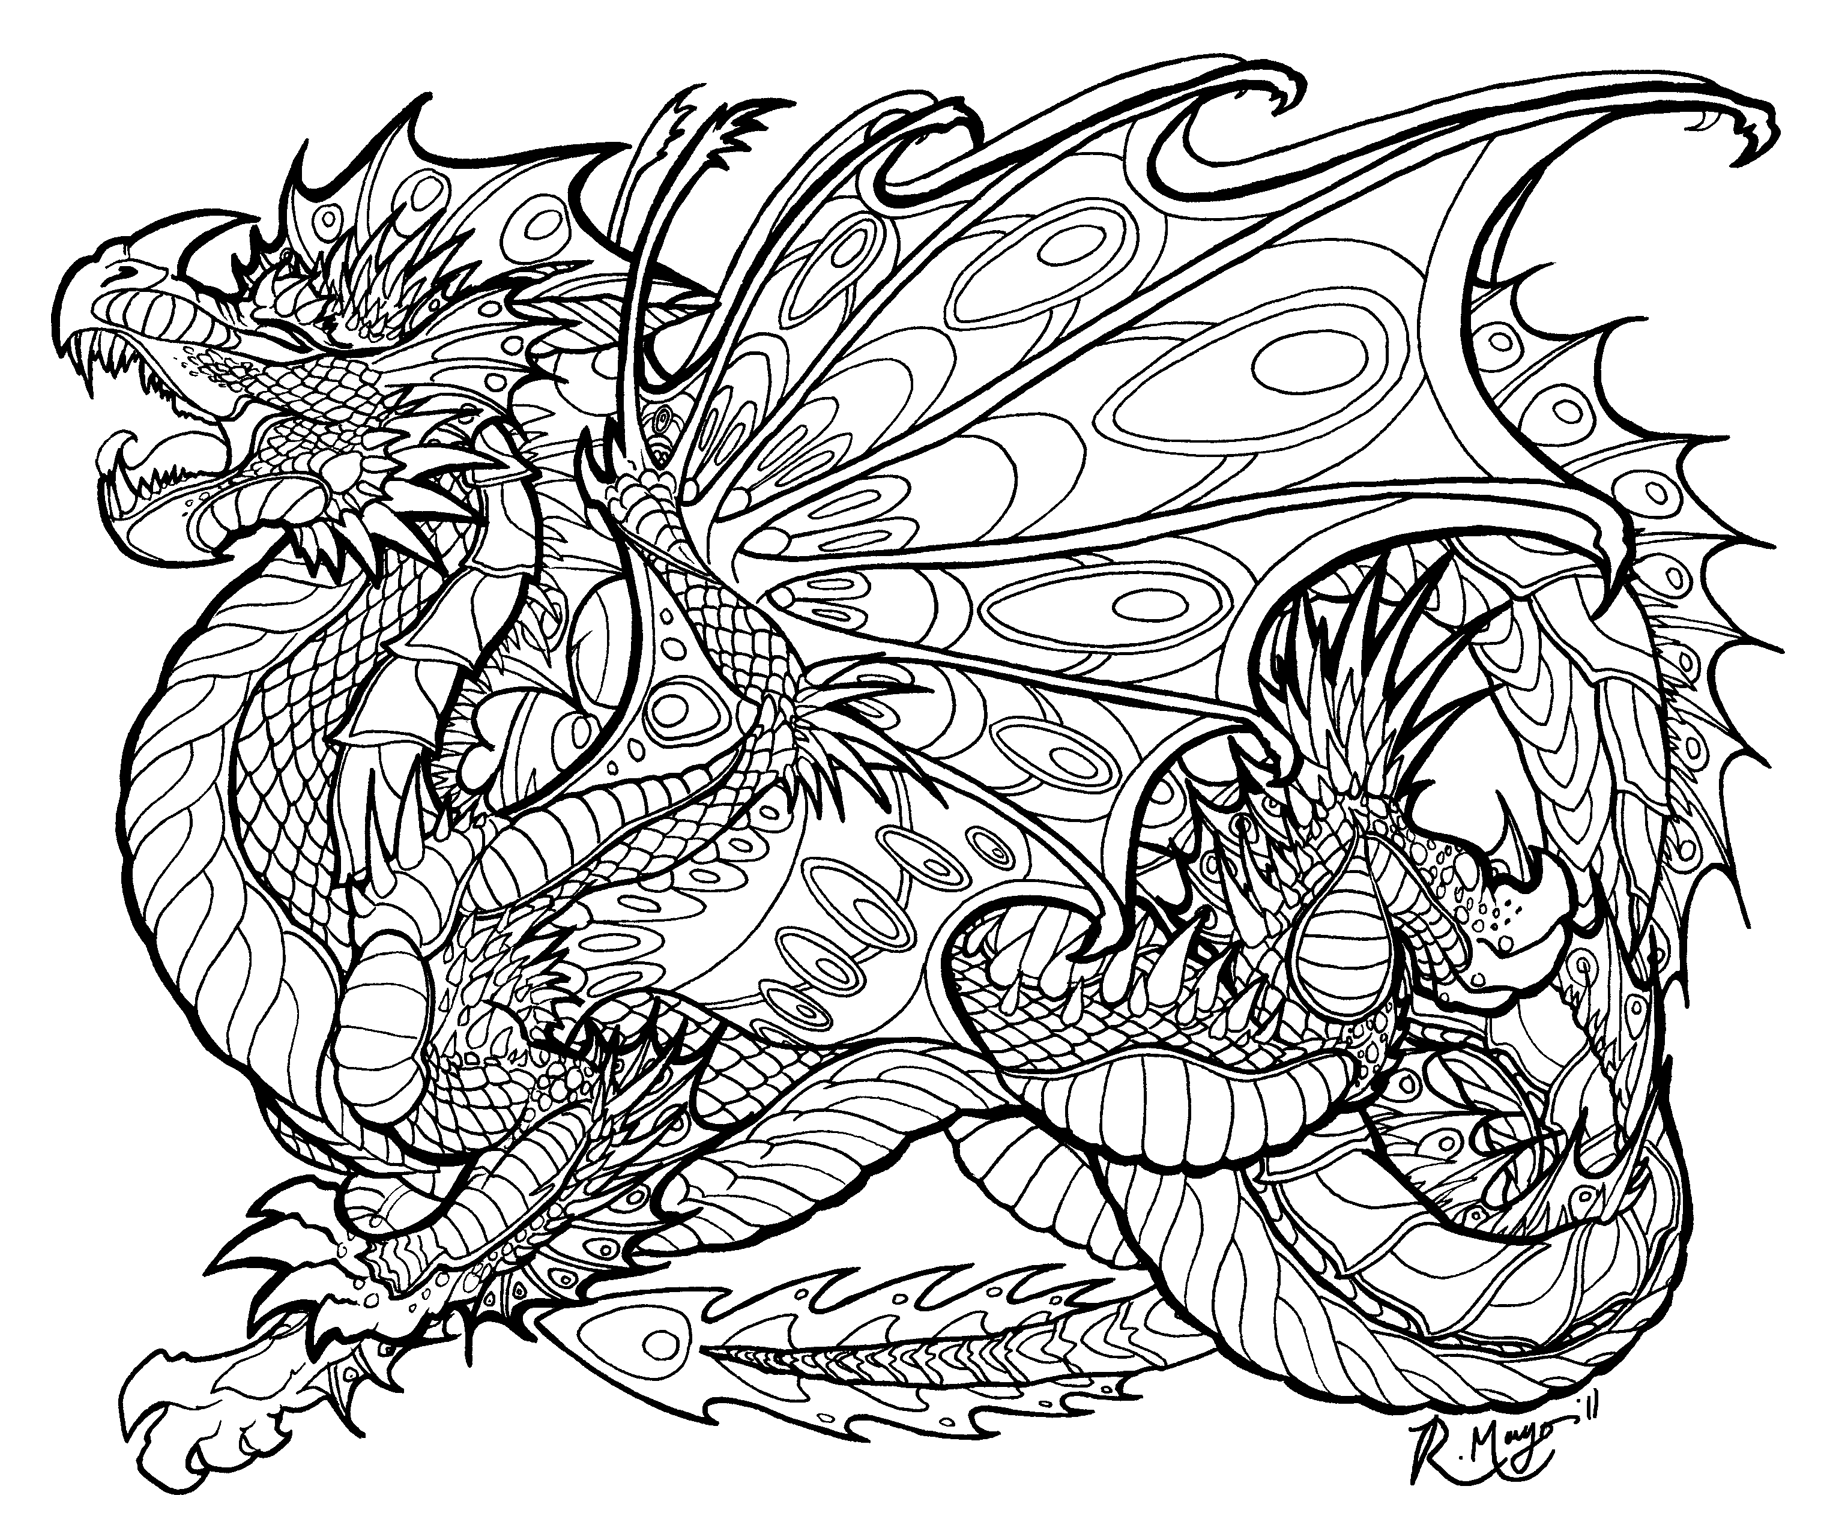 dragon pics to color coloring pages for teenagers dragon coloring home to pics color dragon